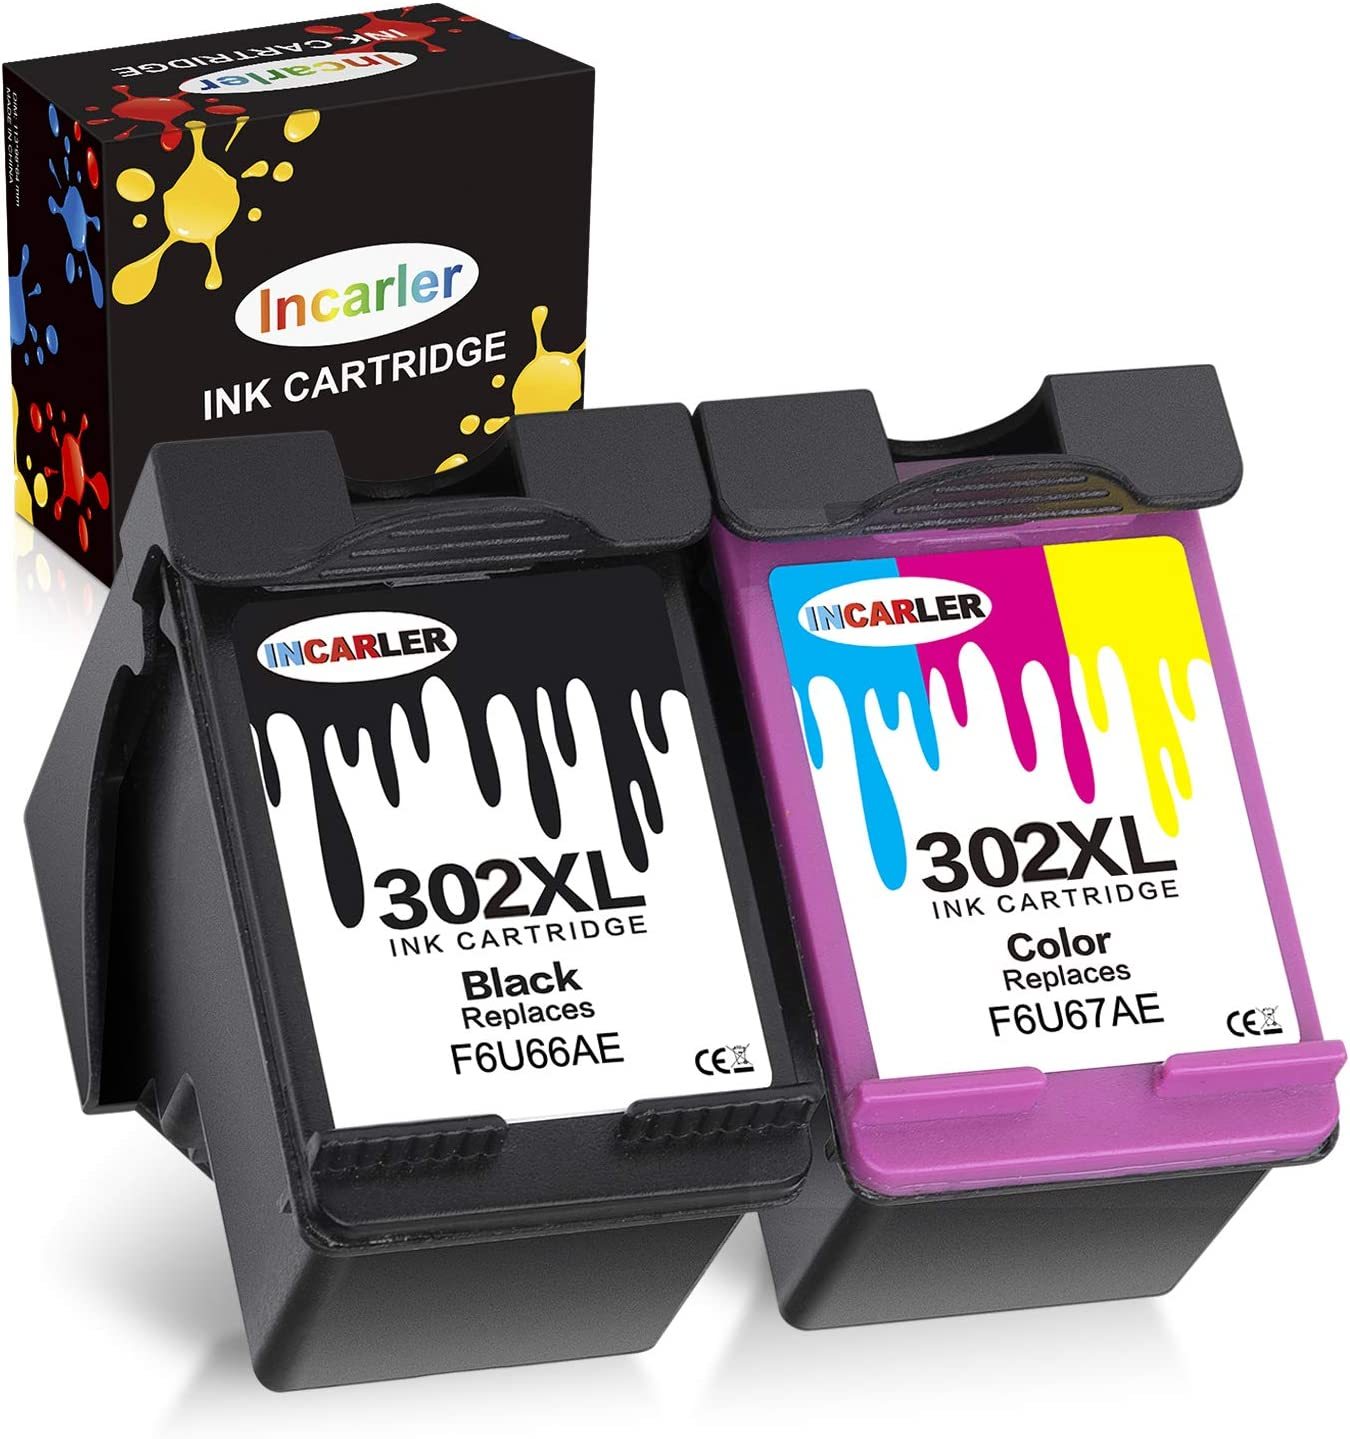 Incarler 302XL Remanufacturado Cartuchos de Tinta Compatible con Tinta HP 302 para HP Deskjet 3630 2130 1110 3636 Officejet 5230 3830 4650 5232 5220 5255 Envy 4520 4524 4527 (1 Negro 1 Tri-Color)